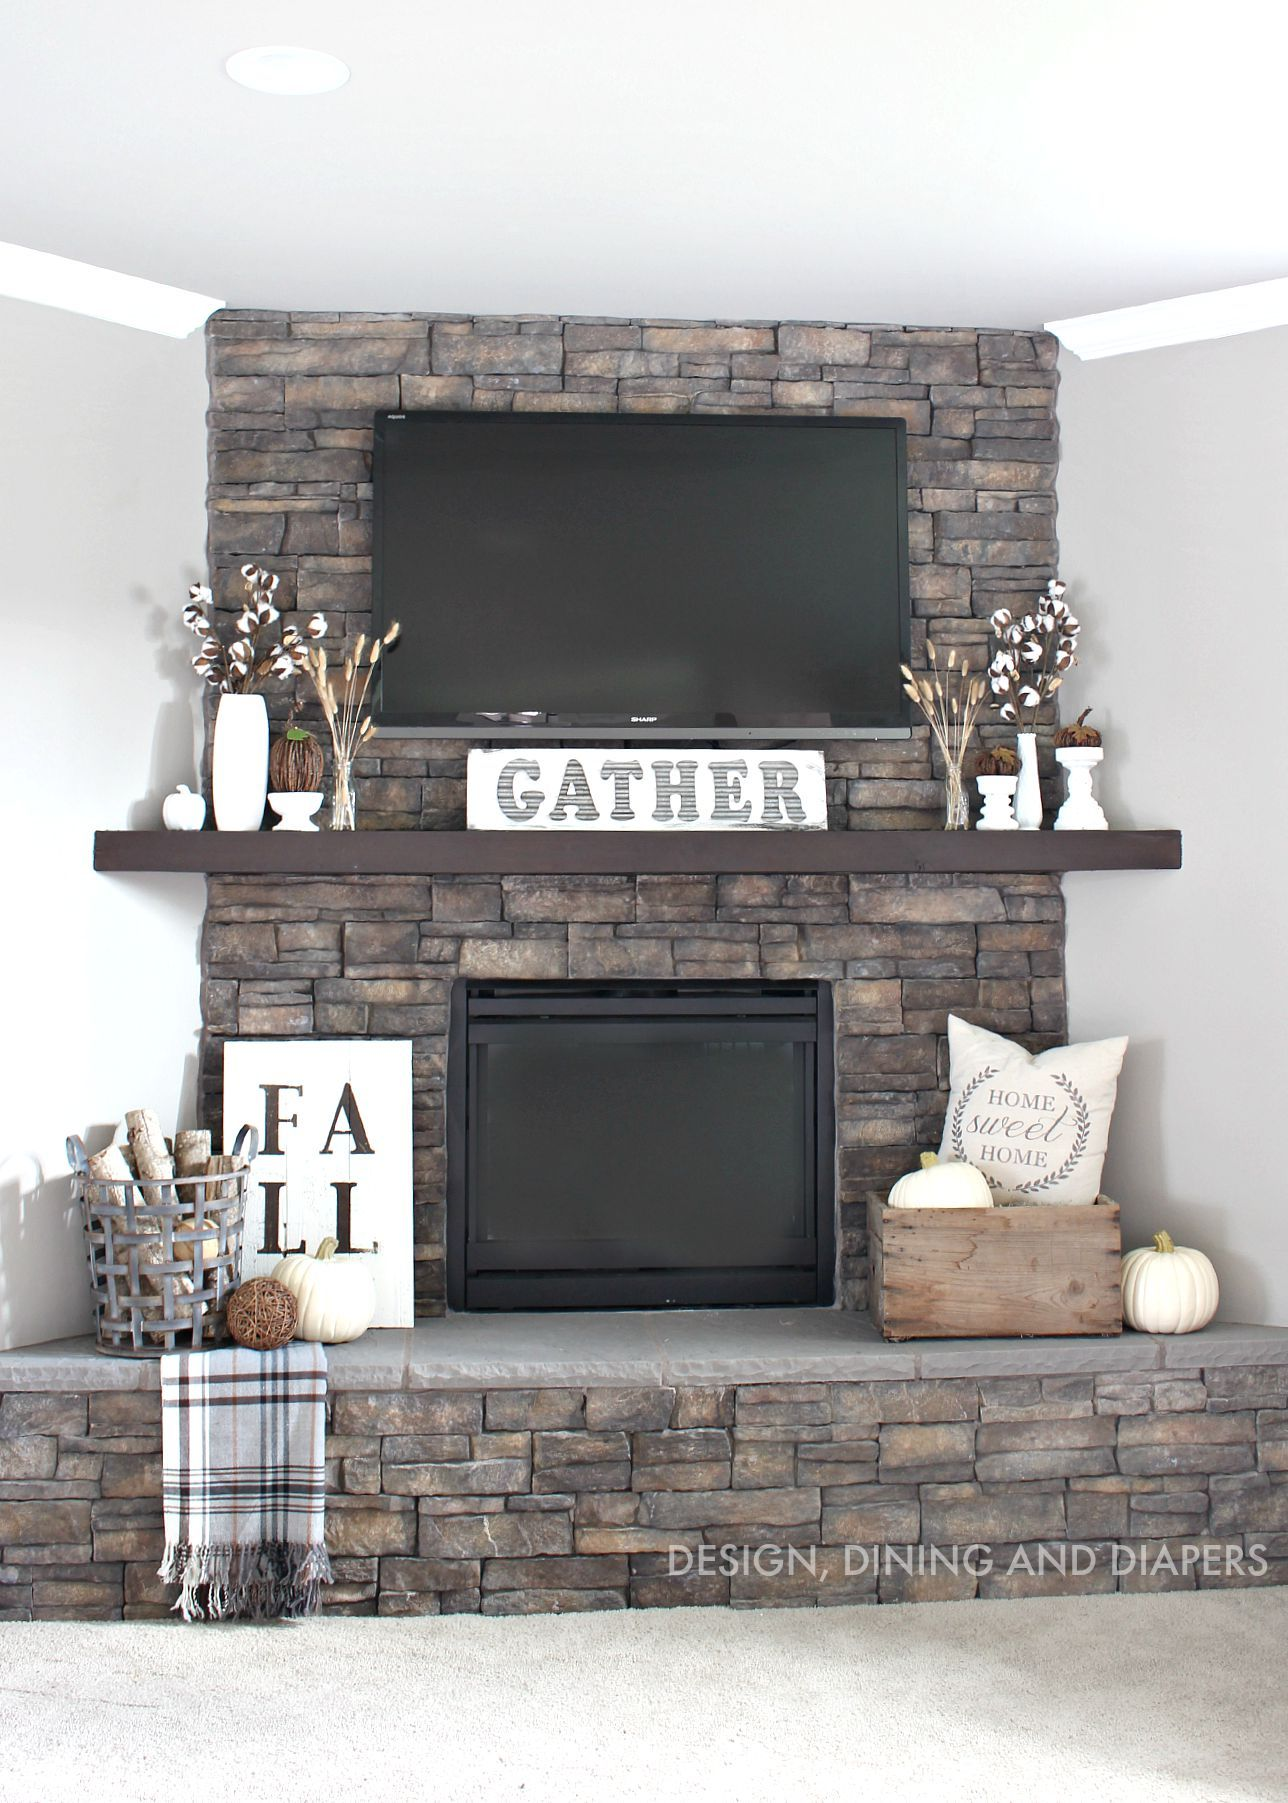 Decorations For Fireplaces Fall Home Tour Fireplaces Ideas Home Decor Fall Mantel